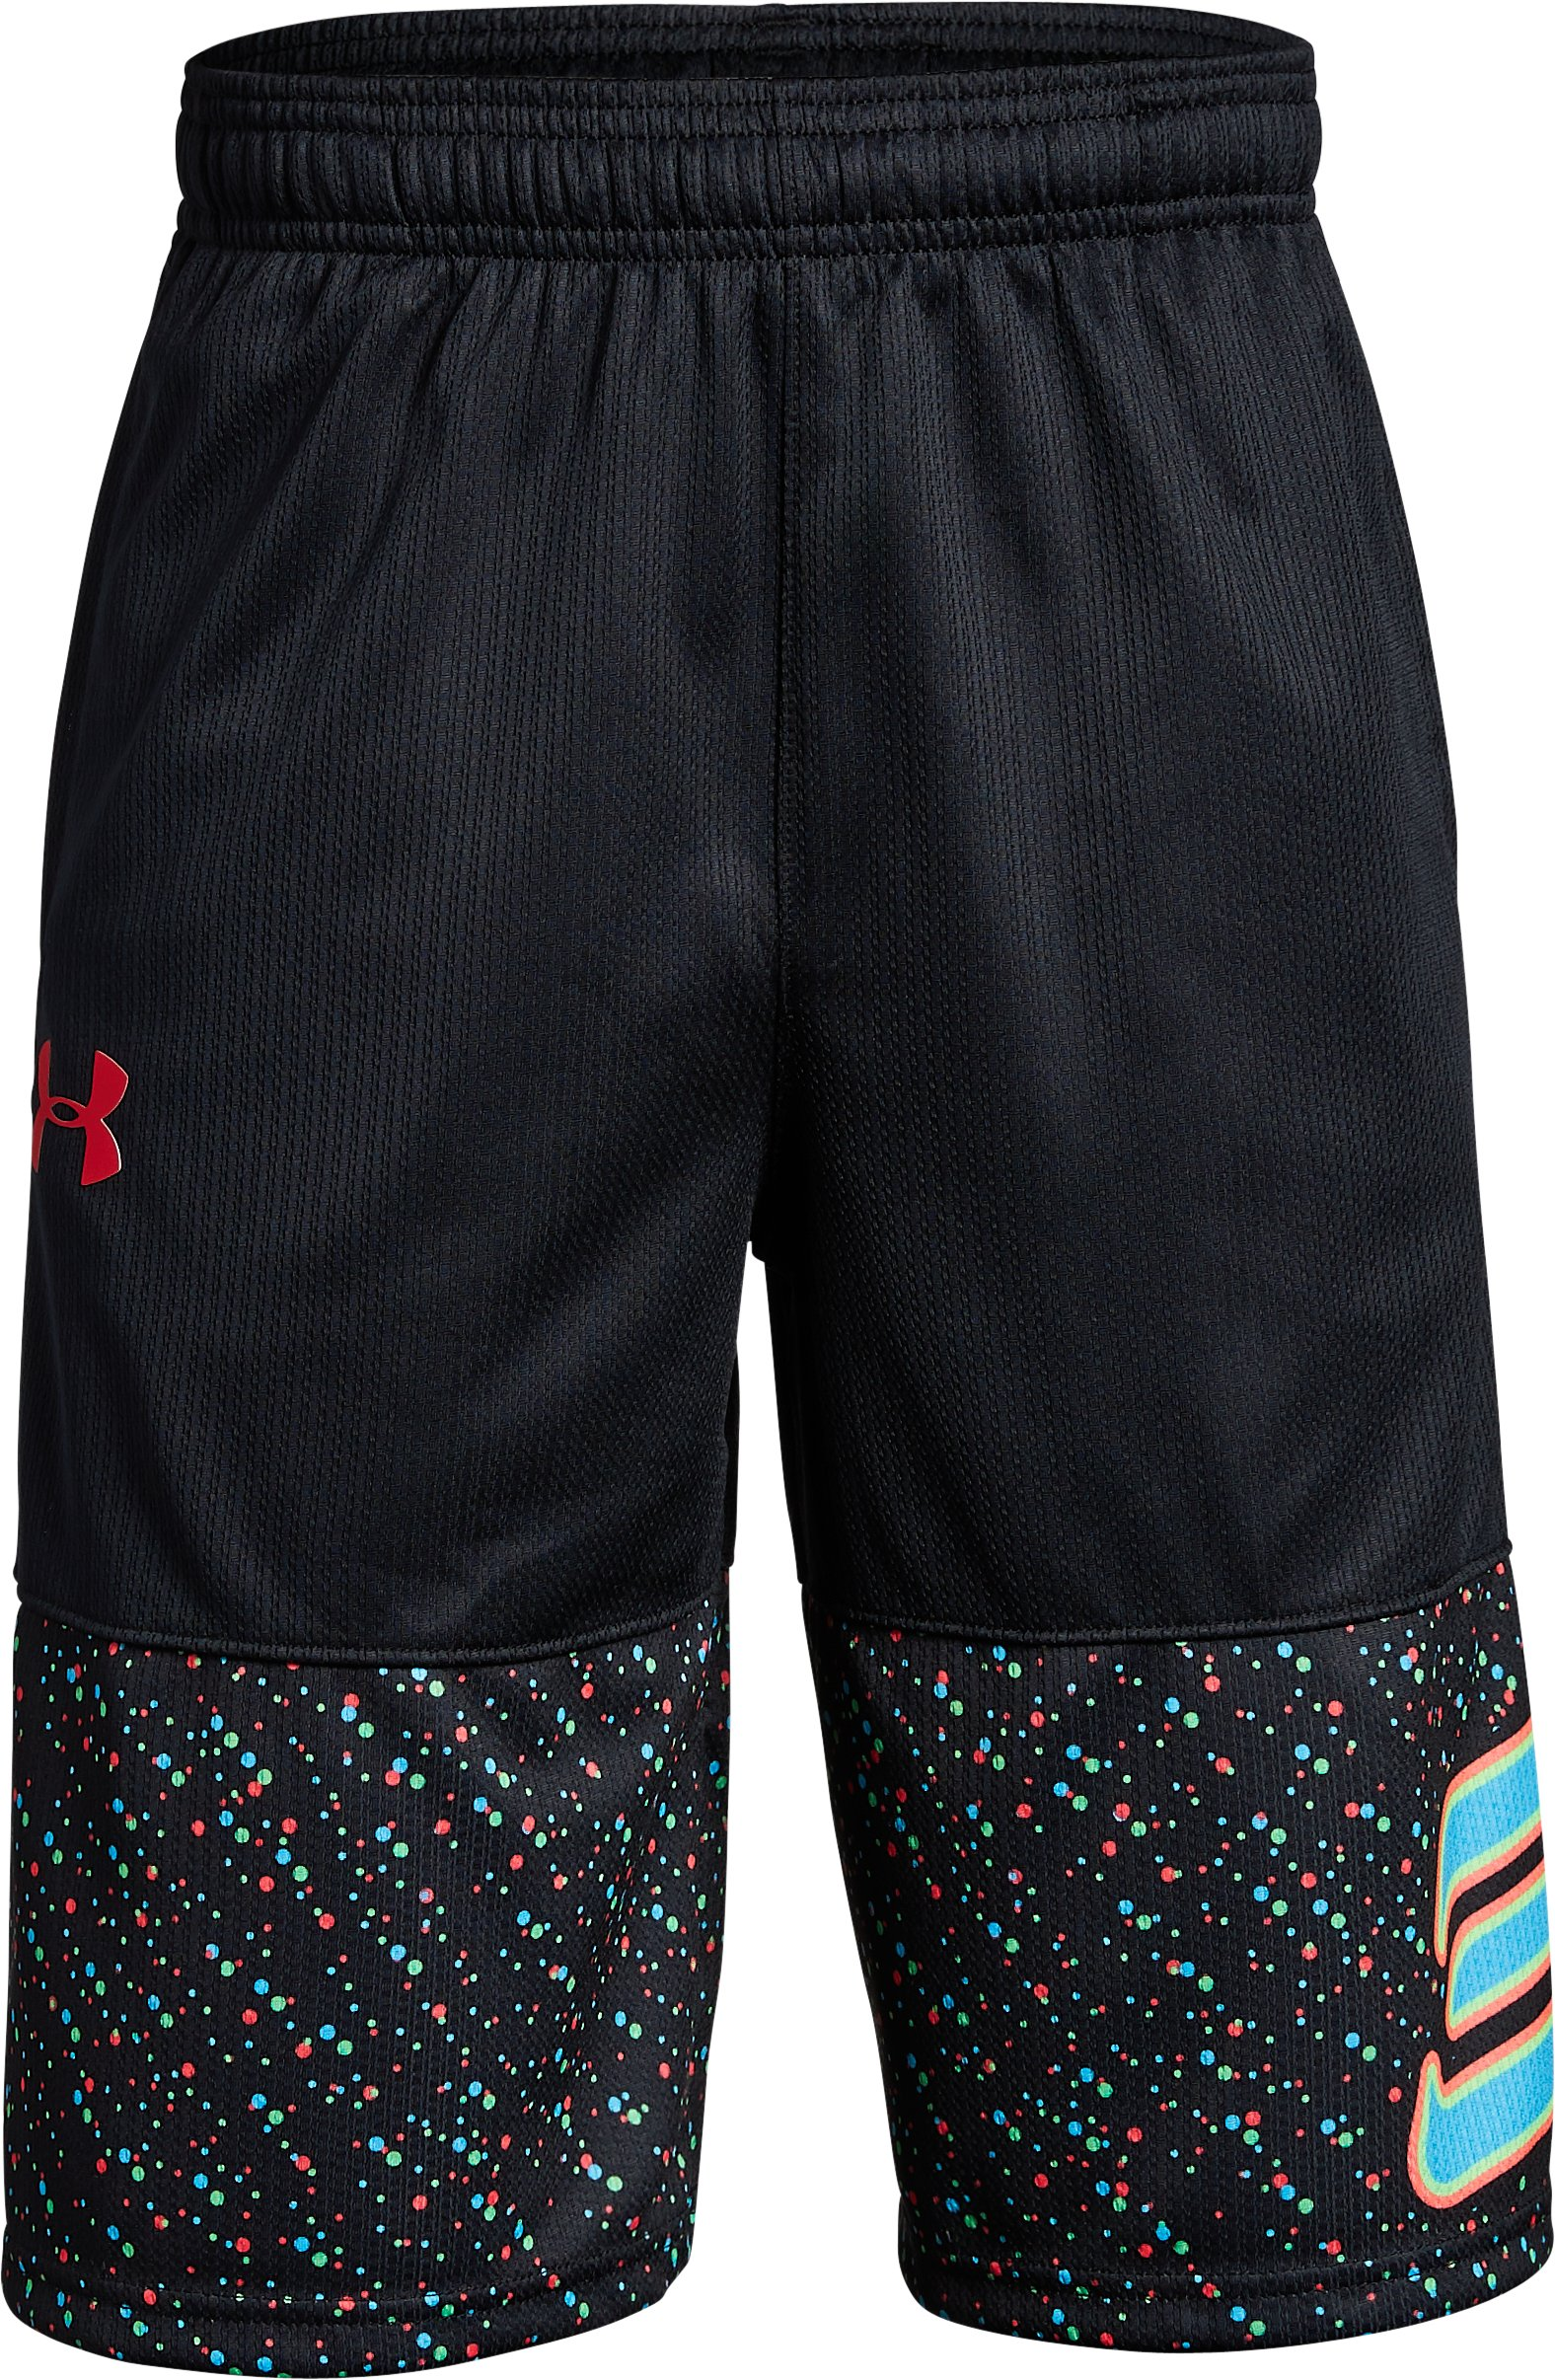 Boys' SC30 Lights Shorts, Black